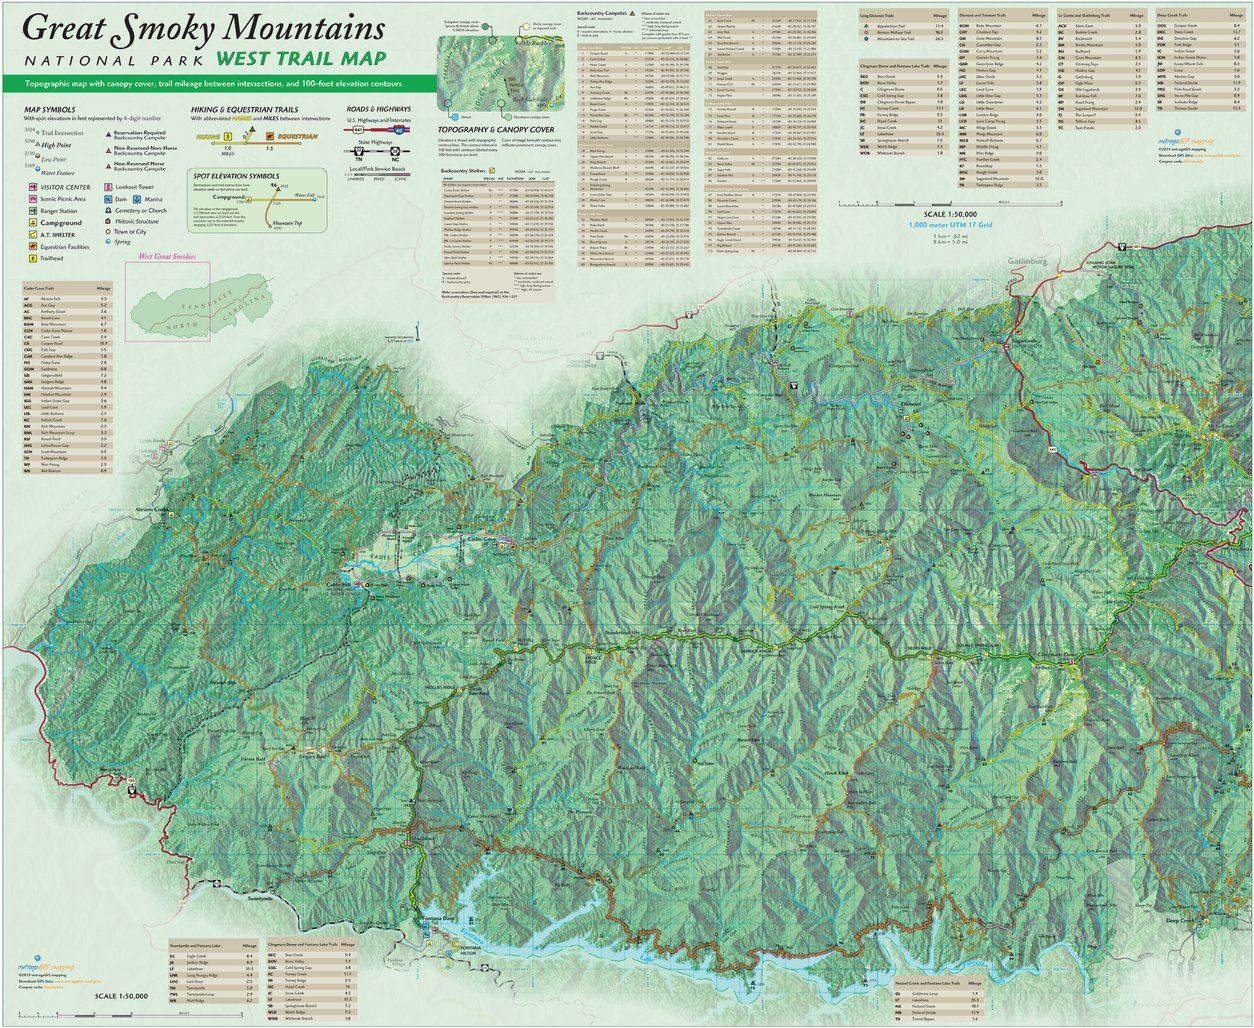 Great Smoky Mountains NP Trail Map West - outrageGIS mapping ...